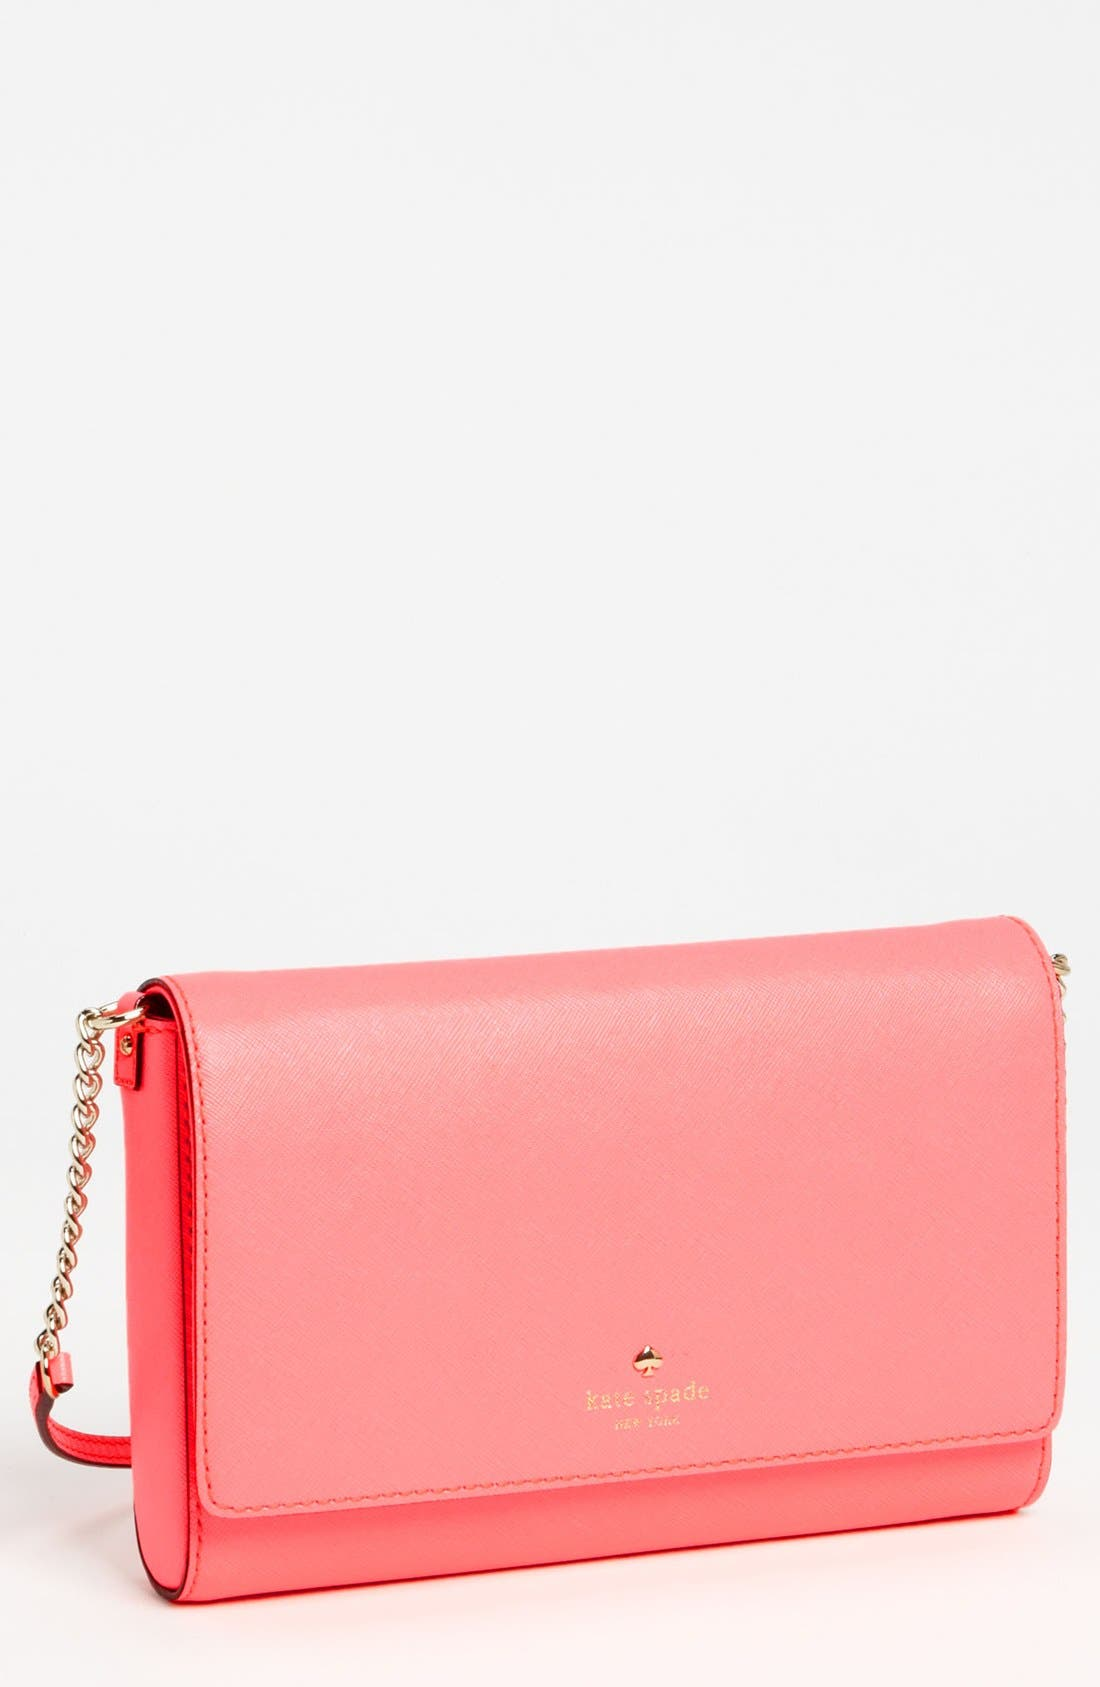 Main Image - kate spade new york 'charlotte street - angela' clutch